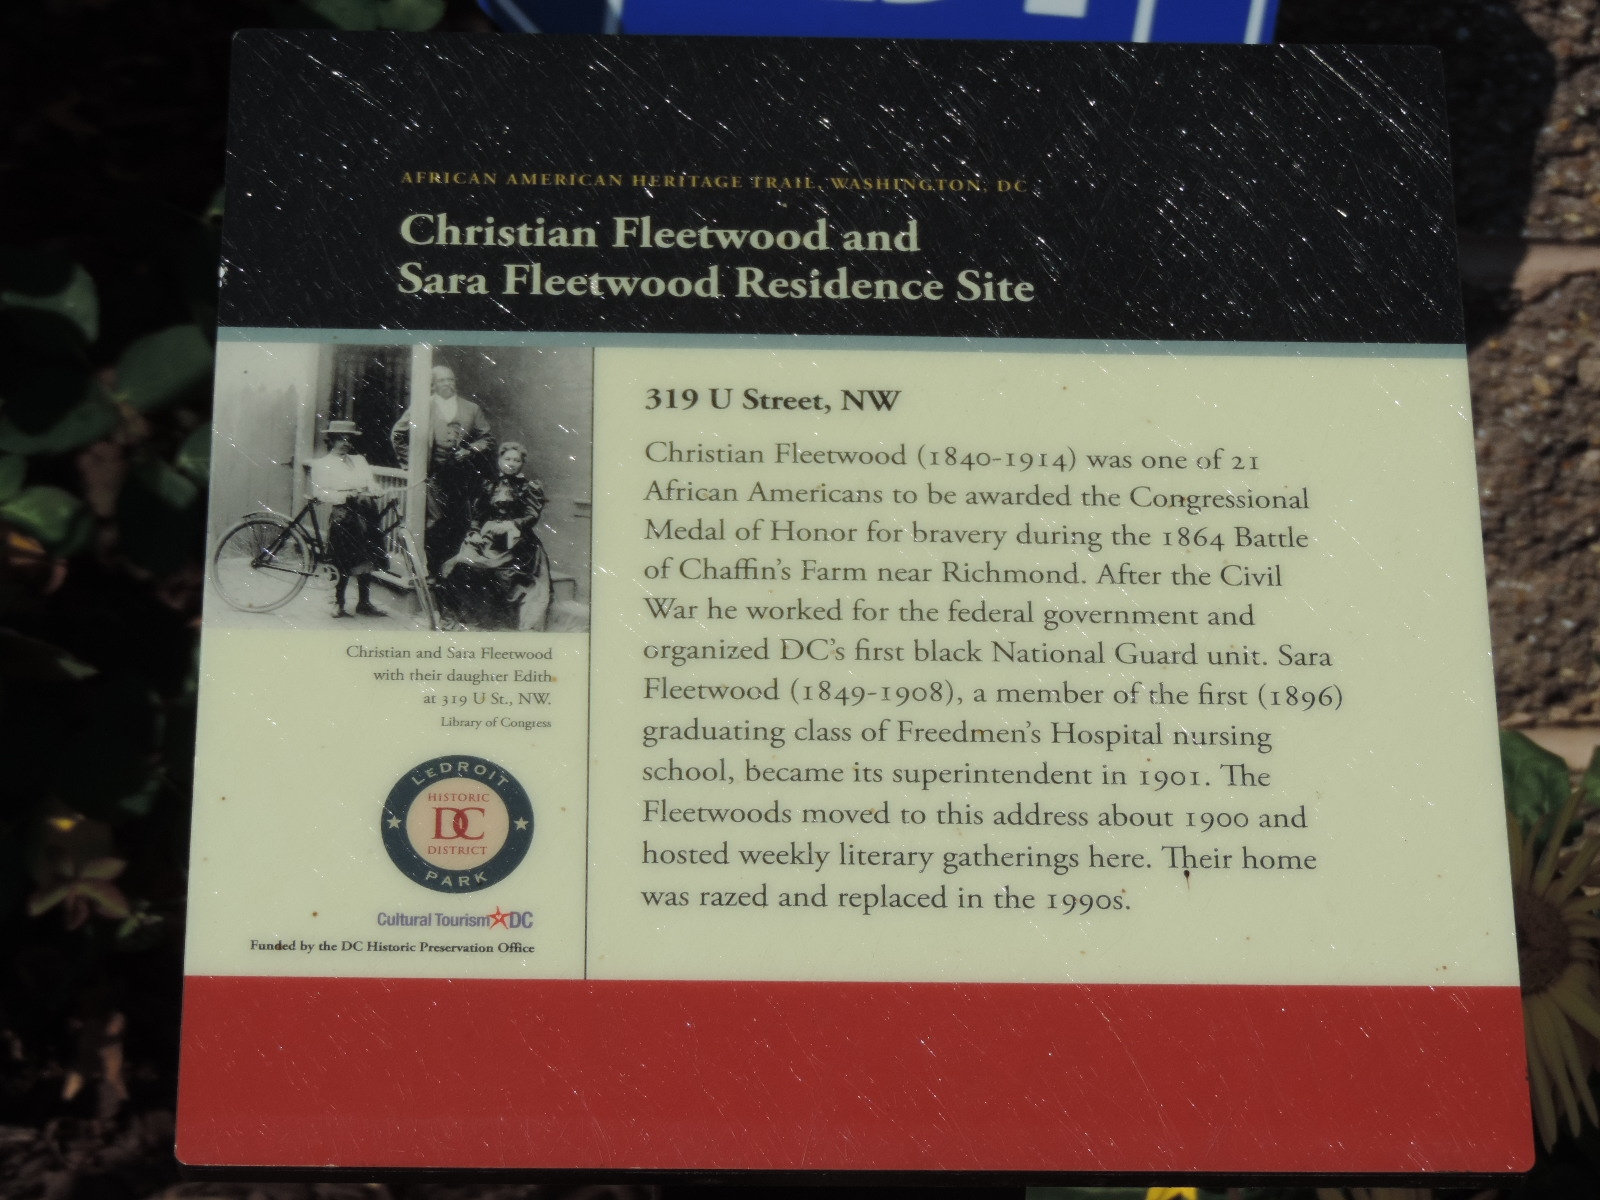 Christian Fleetwood and Sara Fleetwood Residence Site Marker